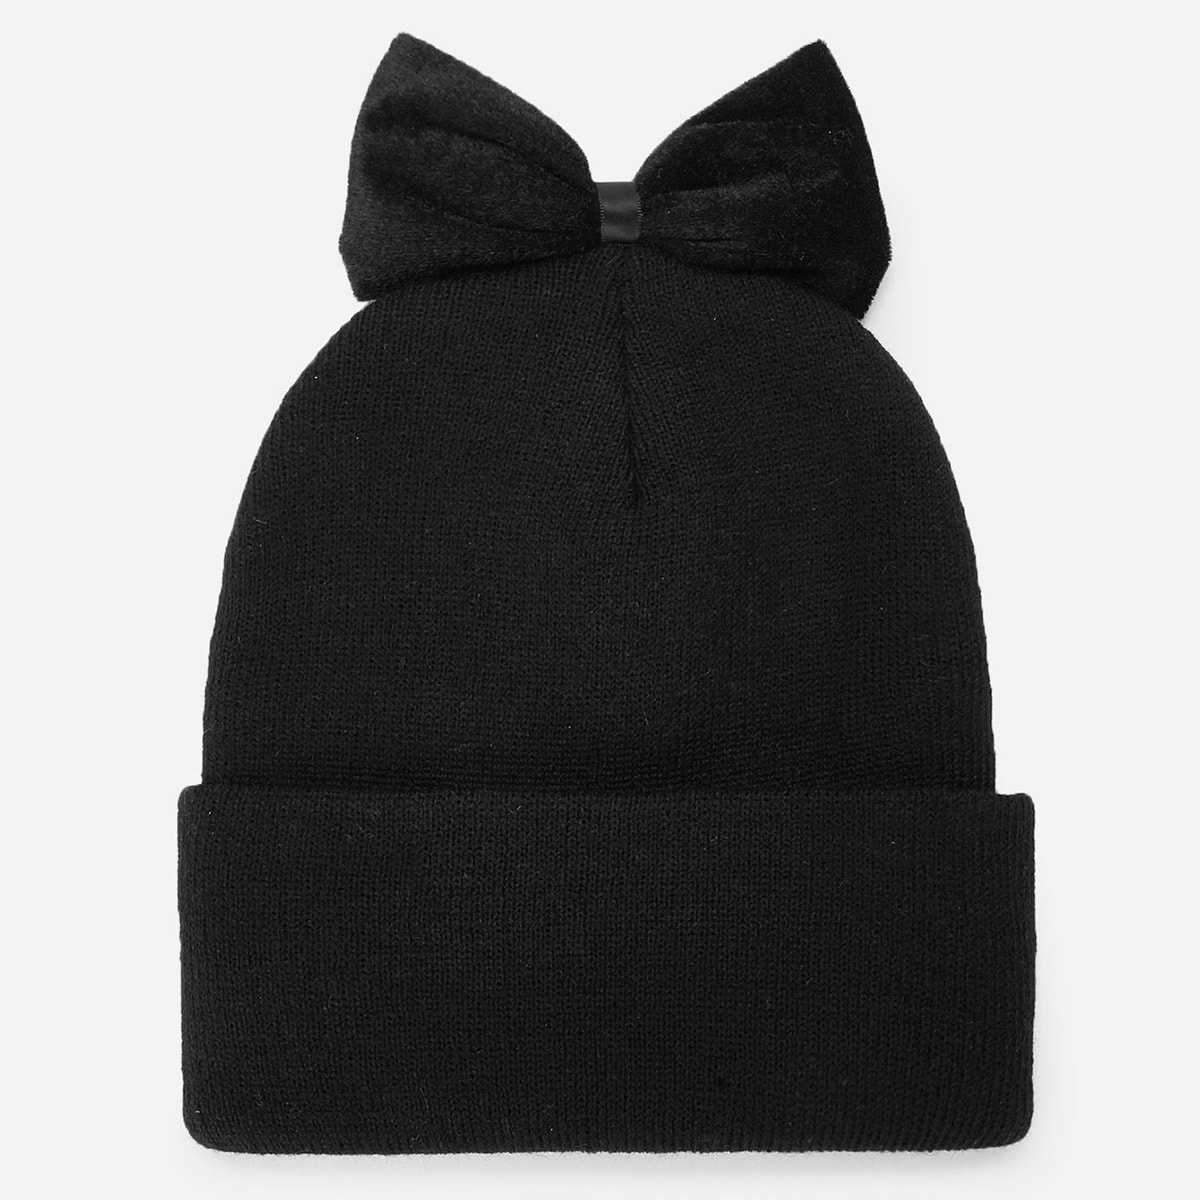 Bow Decorated Beanie in Black by ROMWE on GOOFASH